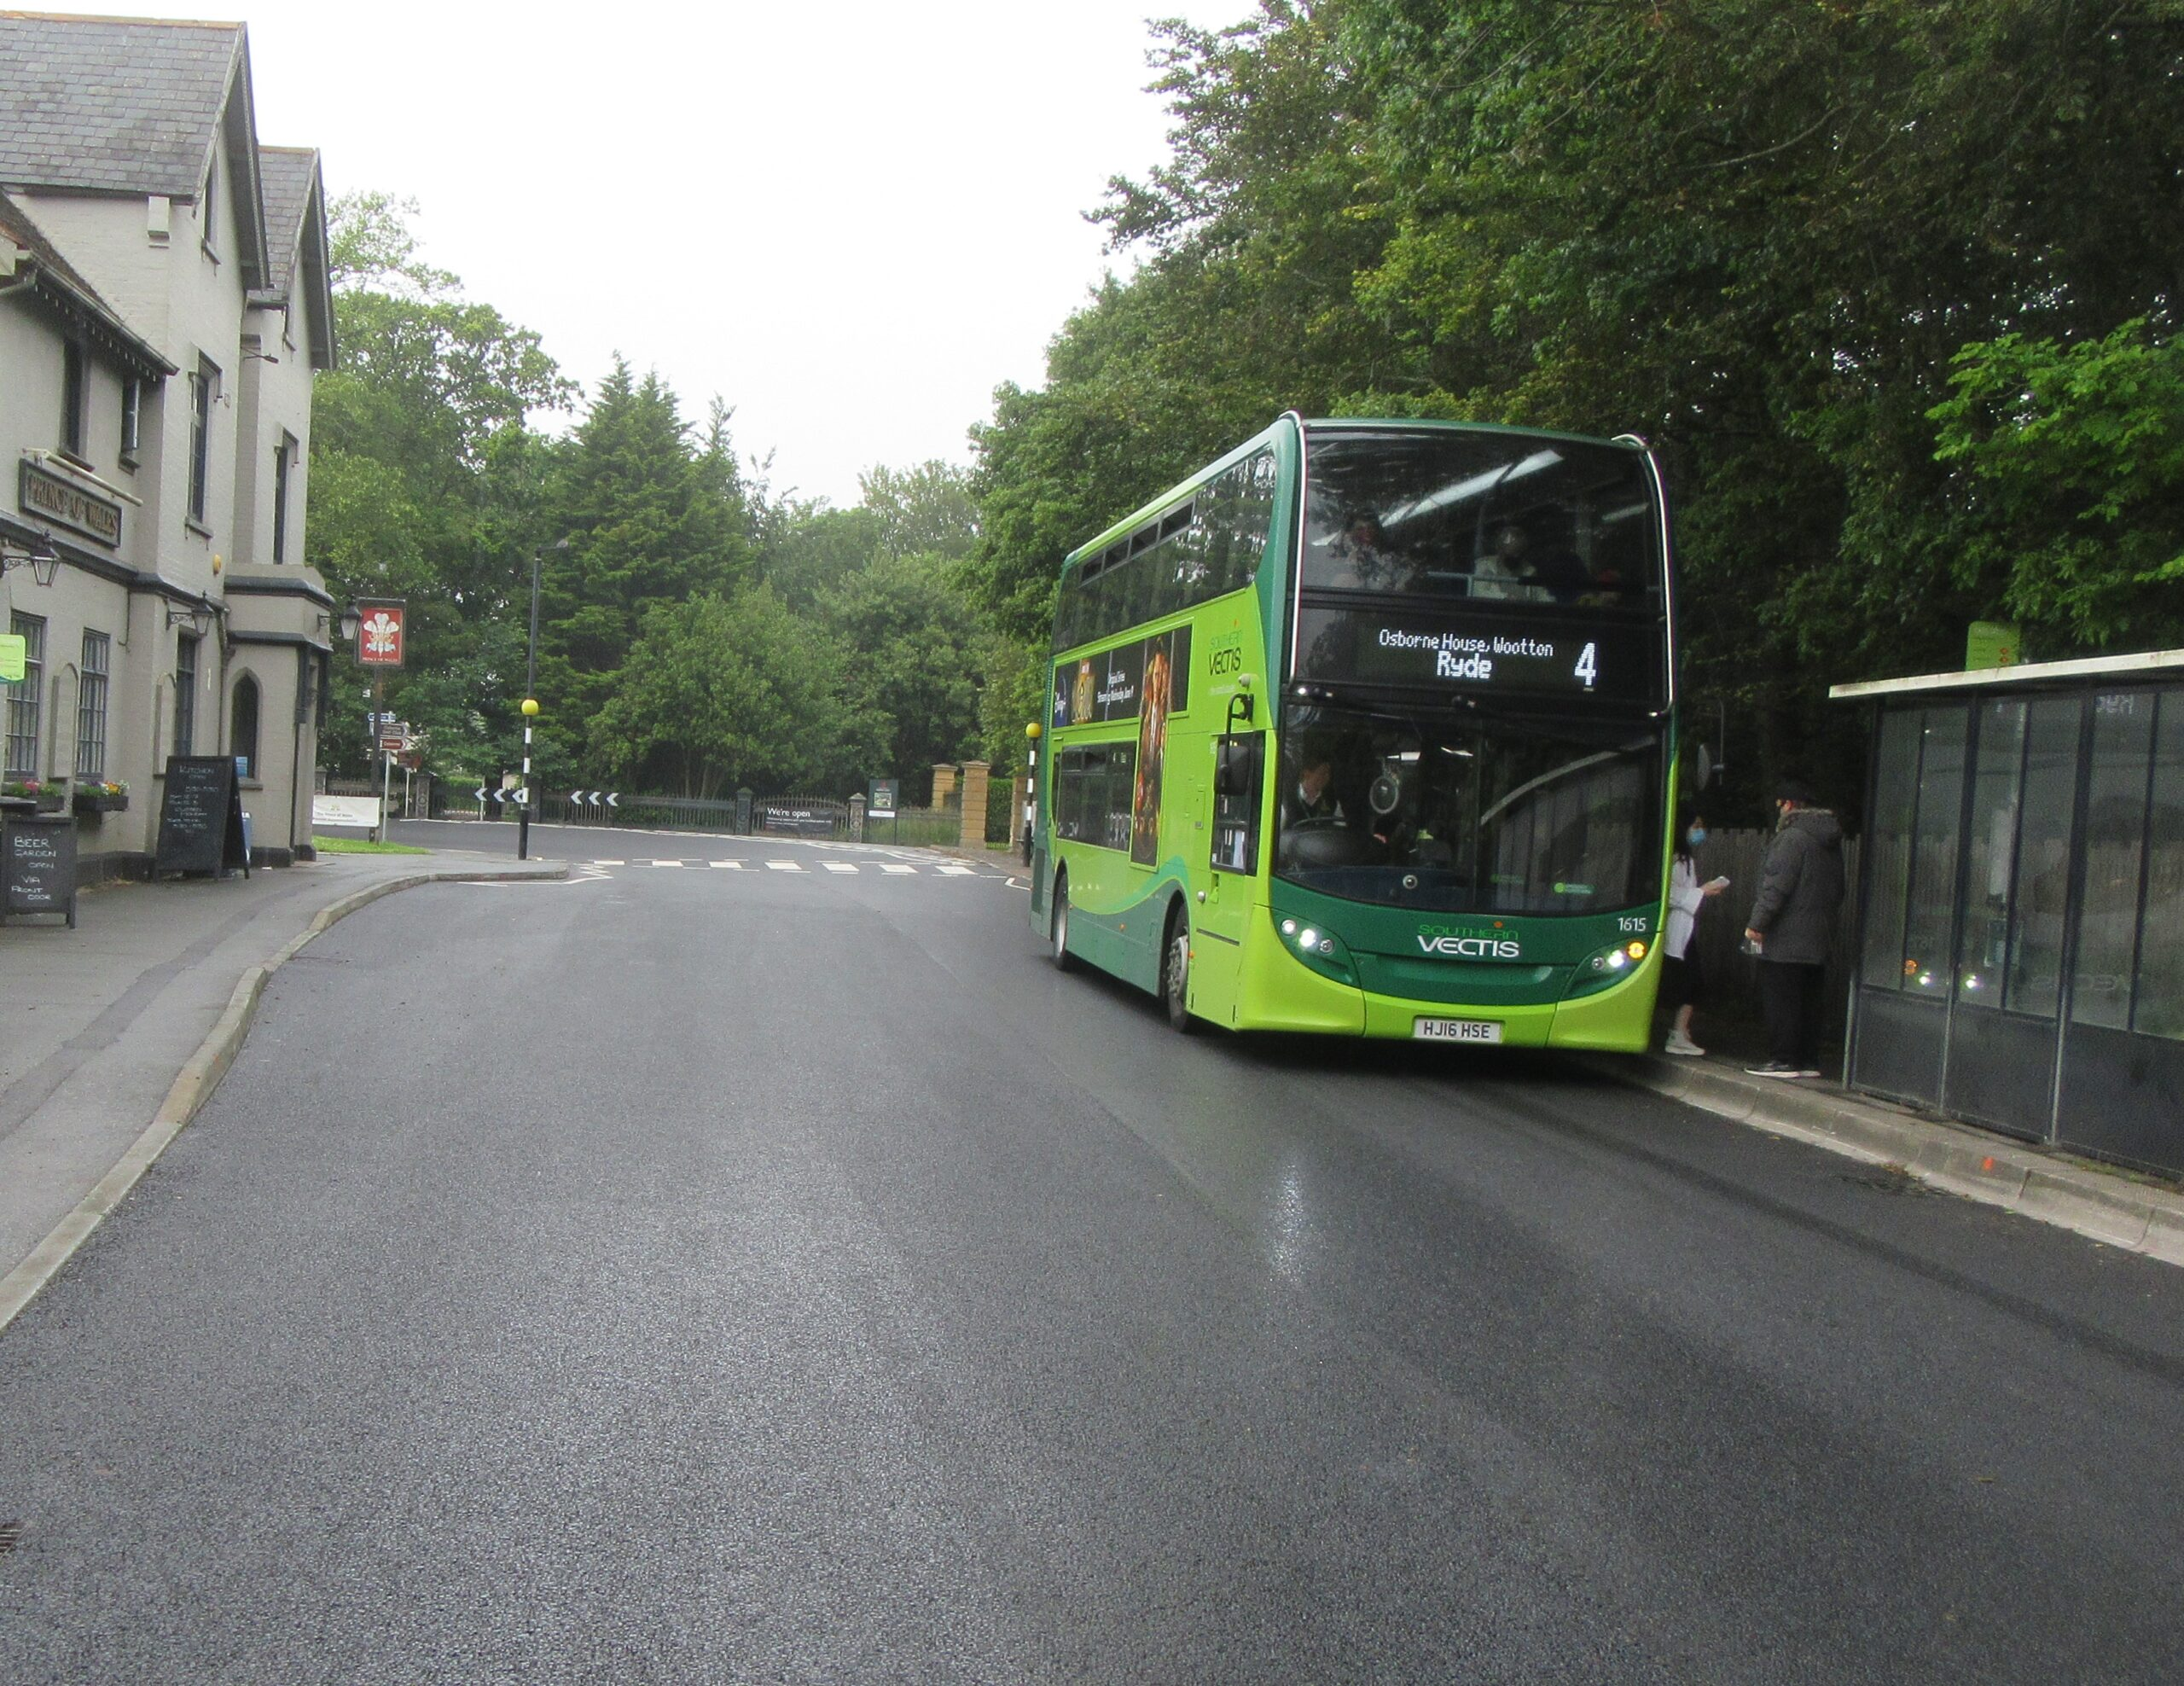 Photo showing the resurfaced road in York Avenue outside the garage on the approach to Osborne House in East Cowes. Bus on the right hand side at the bus stop.